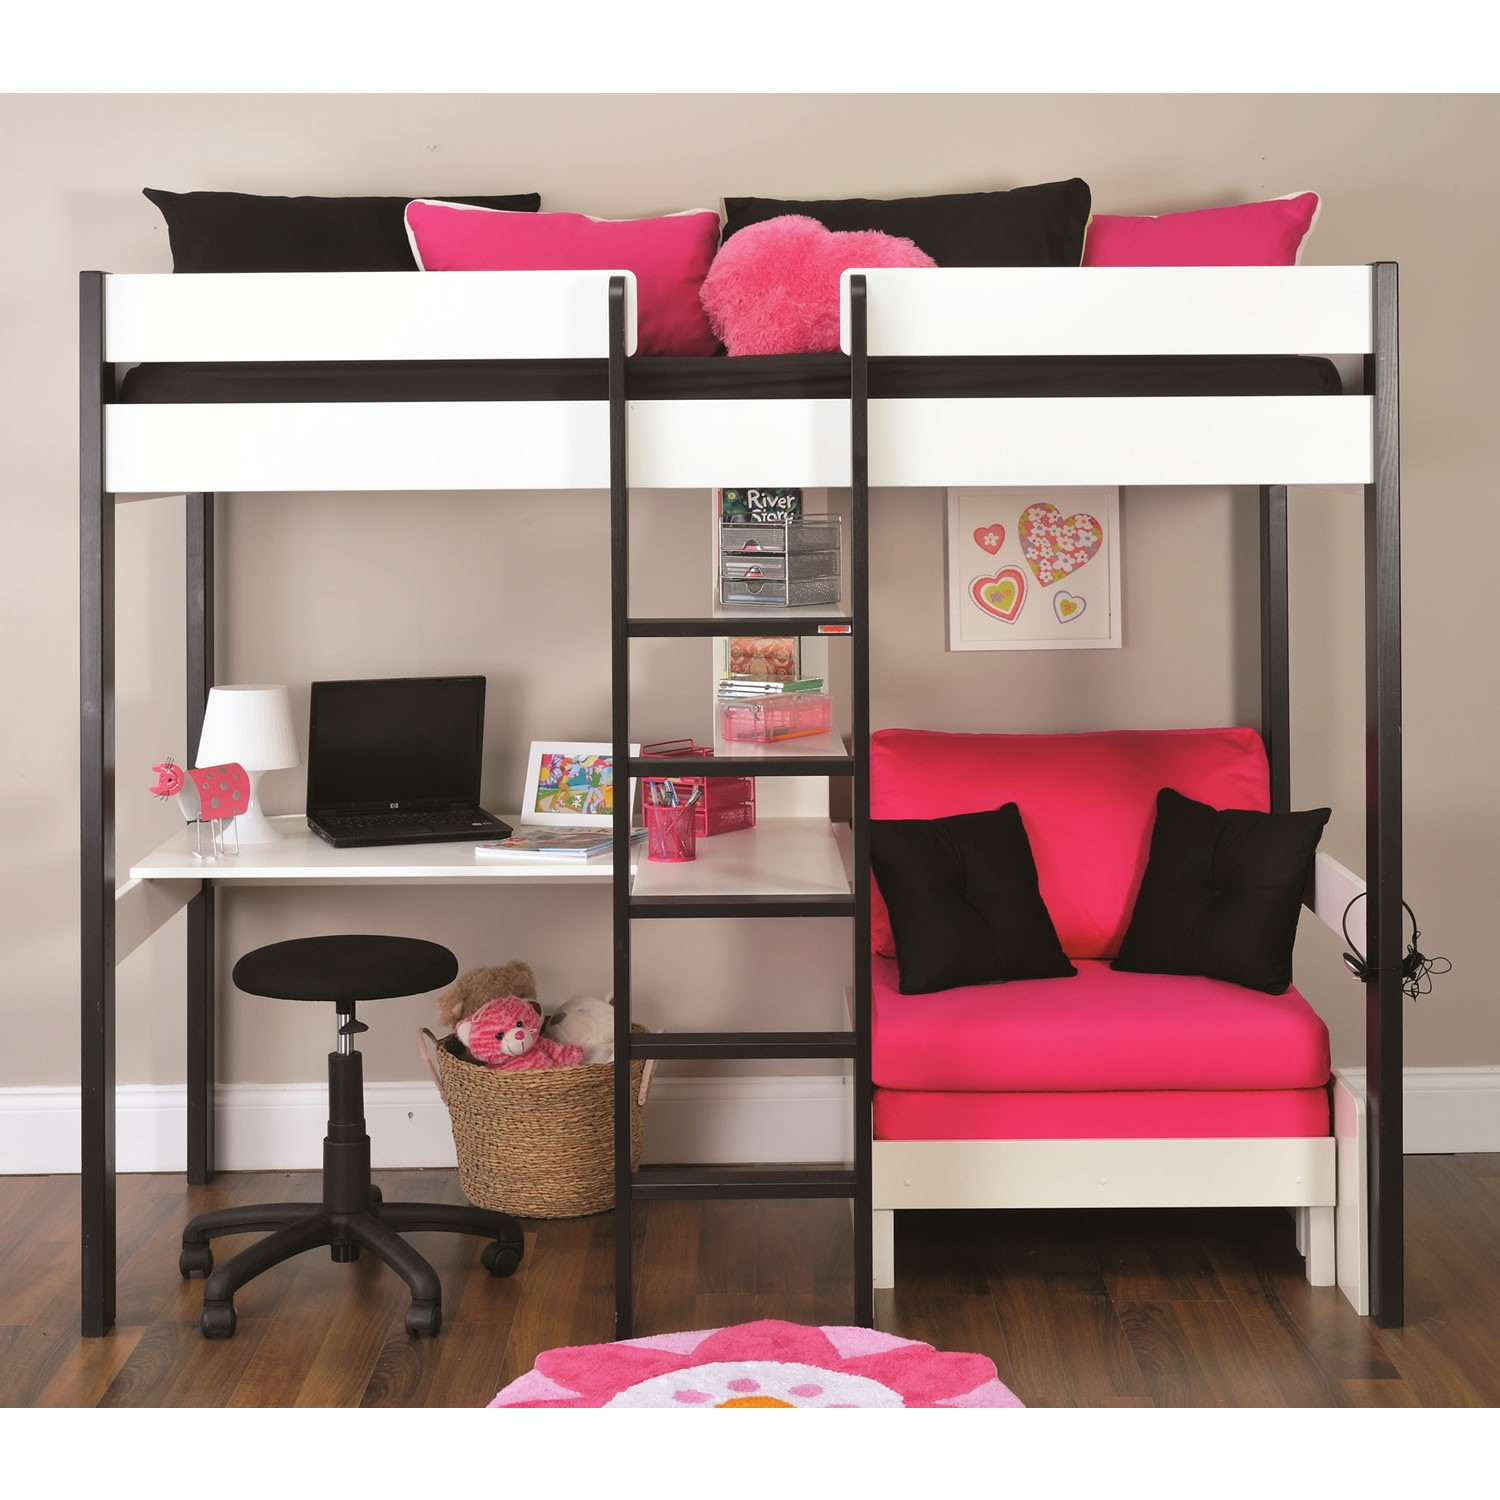 More than 20 beautiful couch bunk bed designs bahay ofw for Modern bunk bed with desk